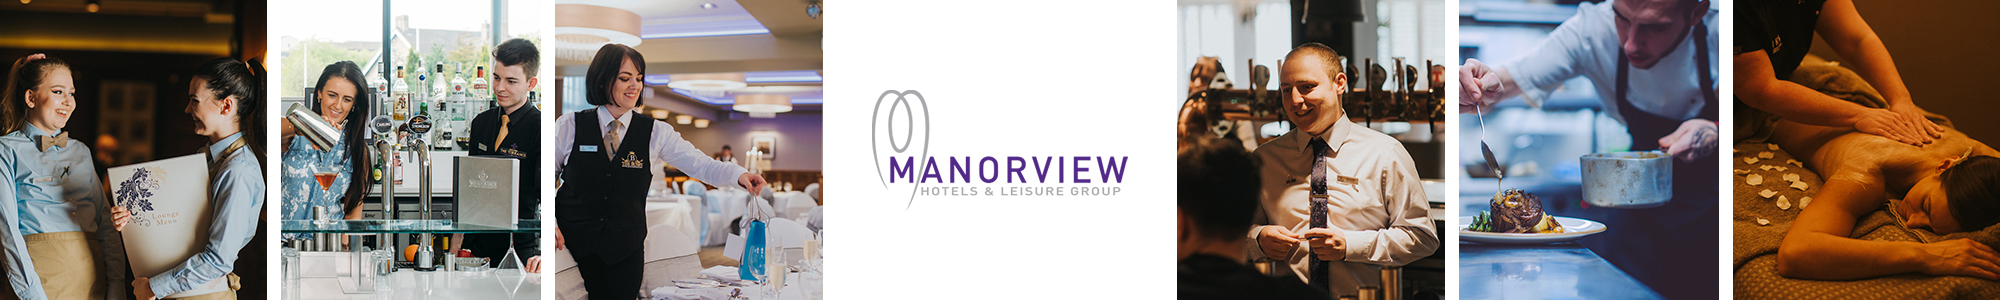 Manorview Hotel Group